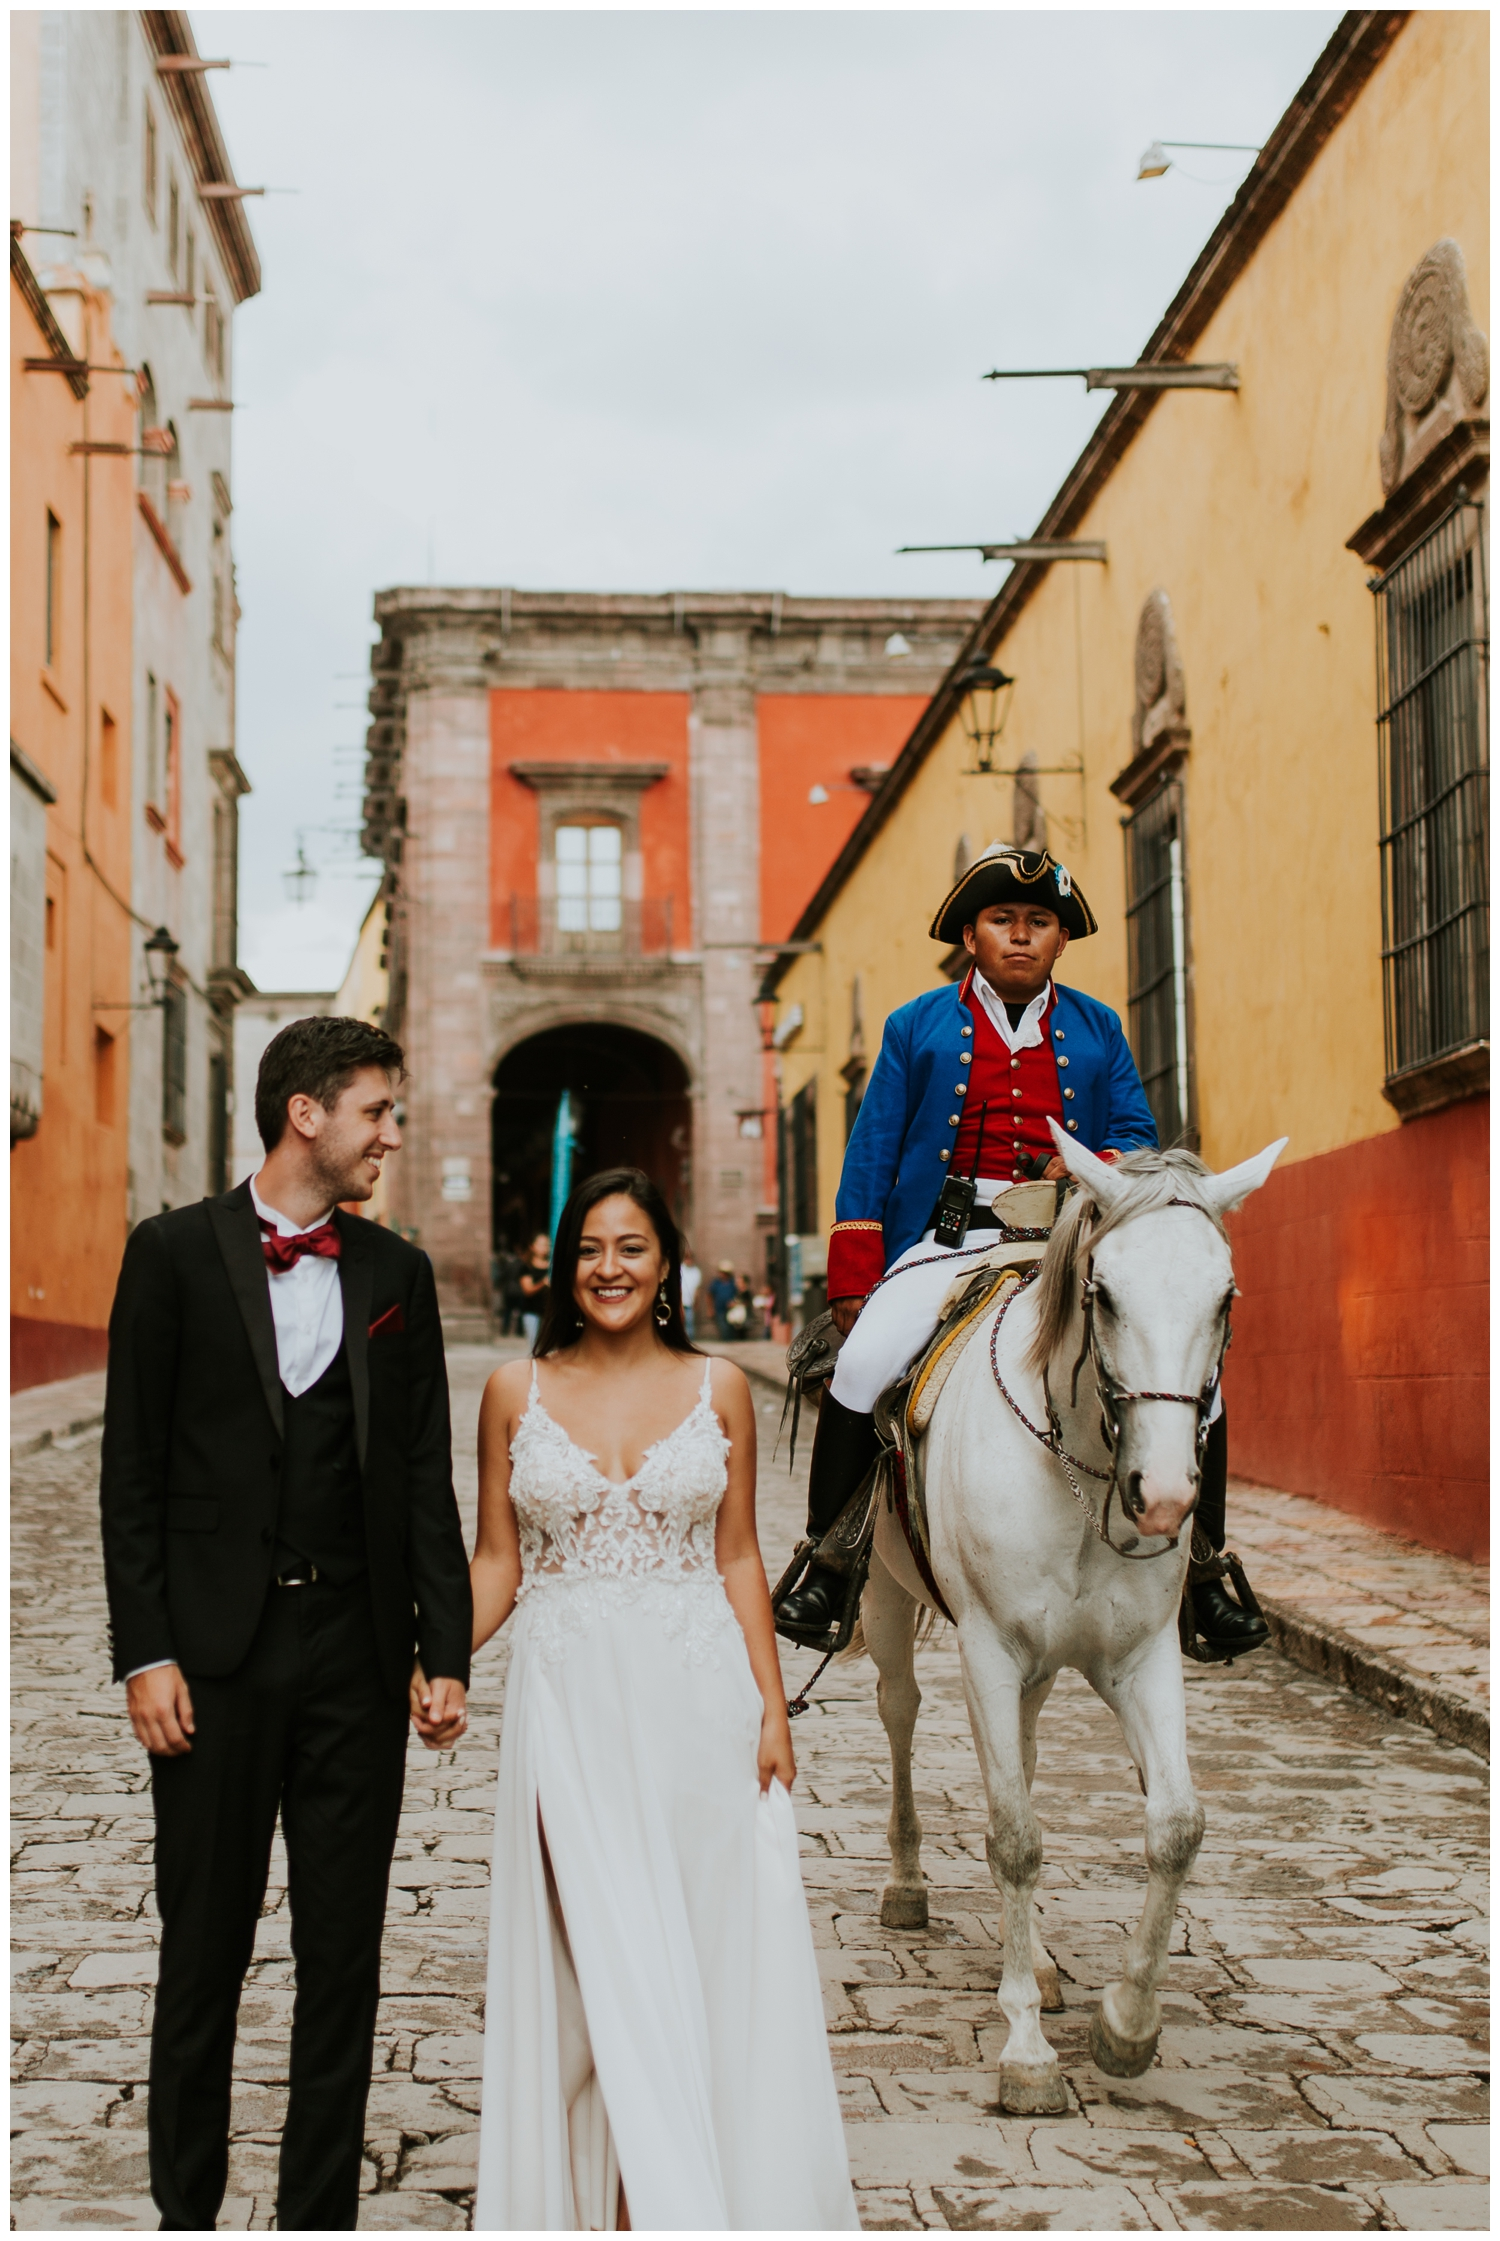 Shane+Sofia, San Miguel de Allende Wedding, Mexico Wedding, Contista Productions Wedding Photography_0215.jpg